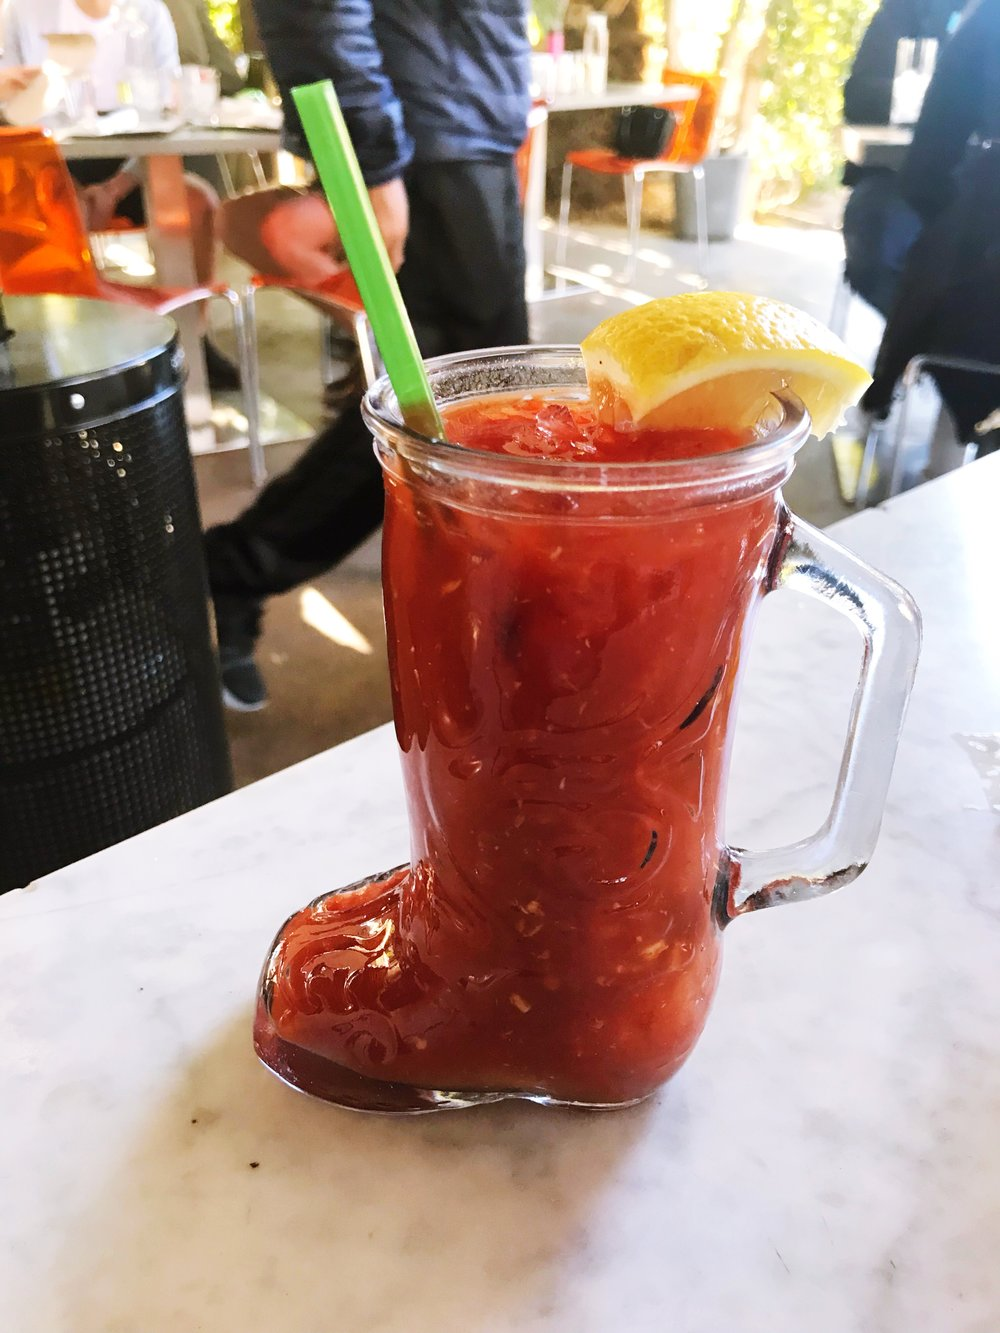 My bloody mary served in a glass boot!